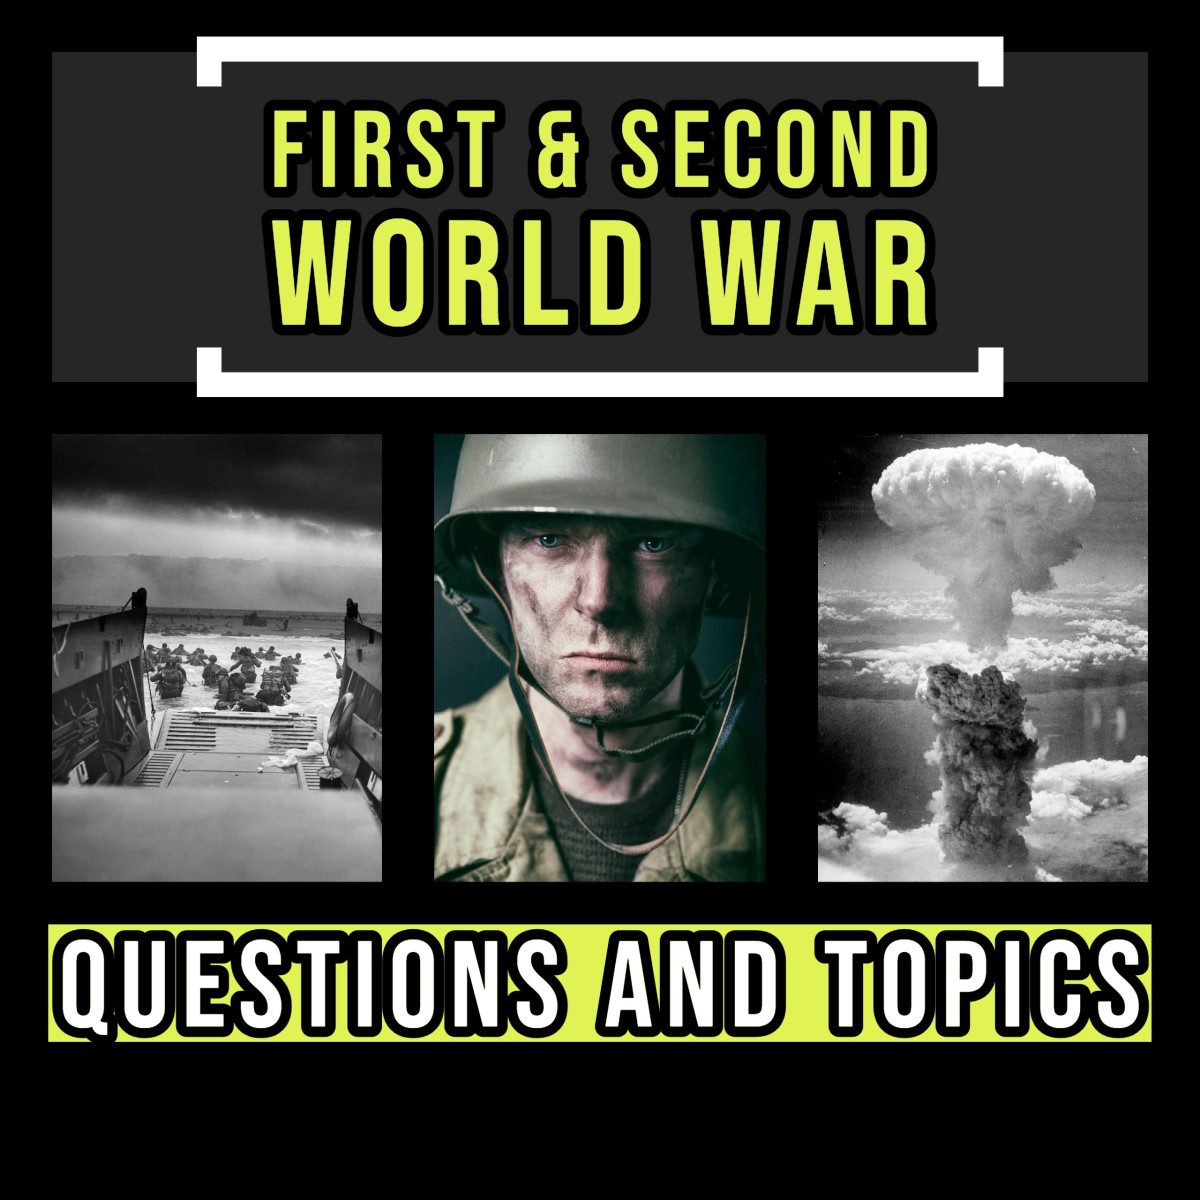 History topics for WWI & WWII.